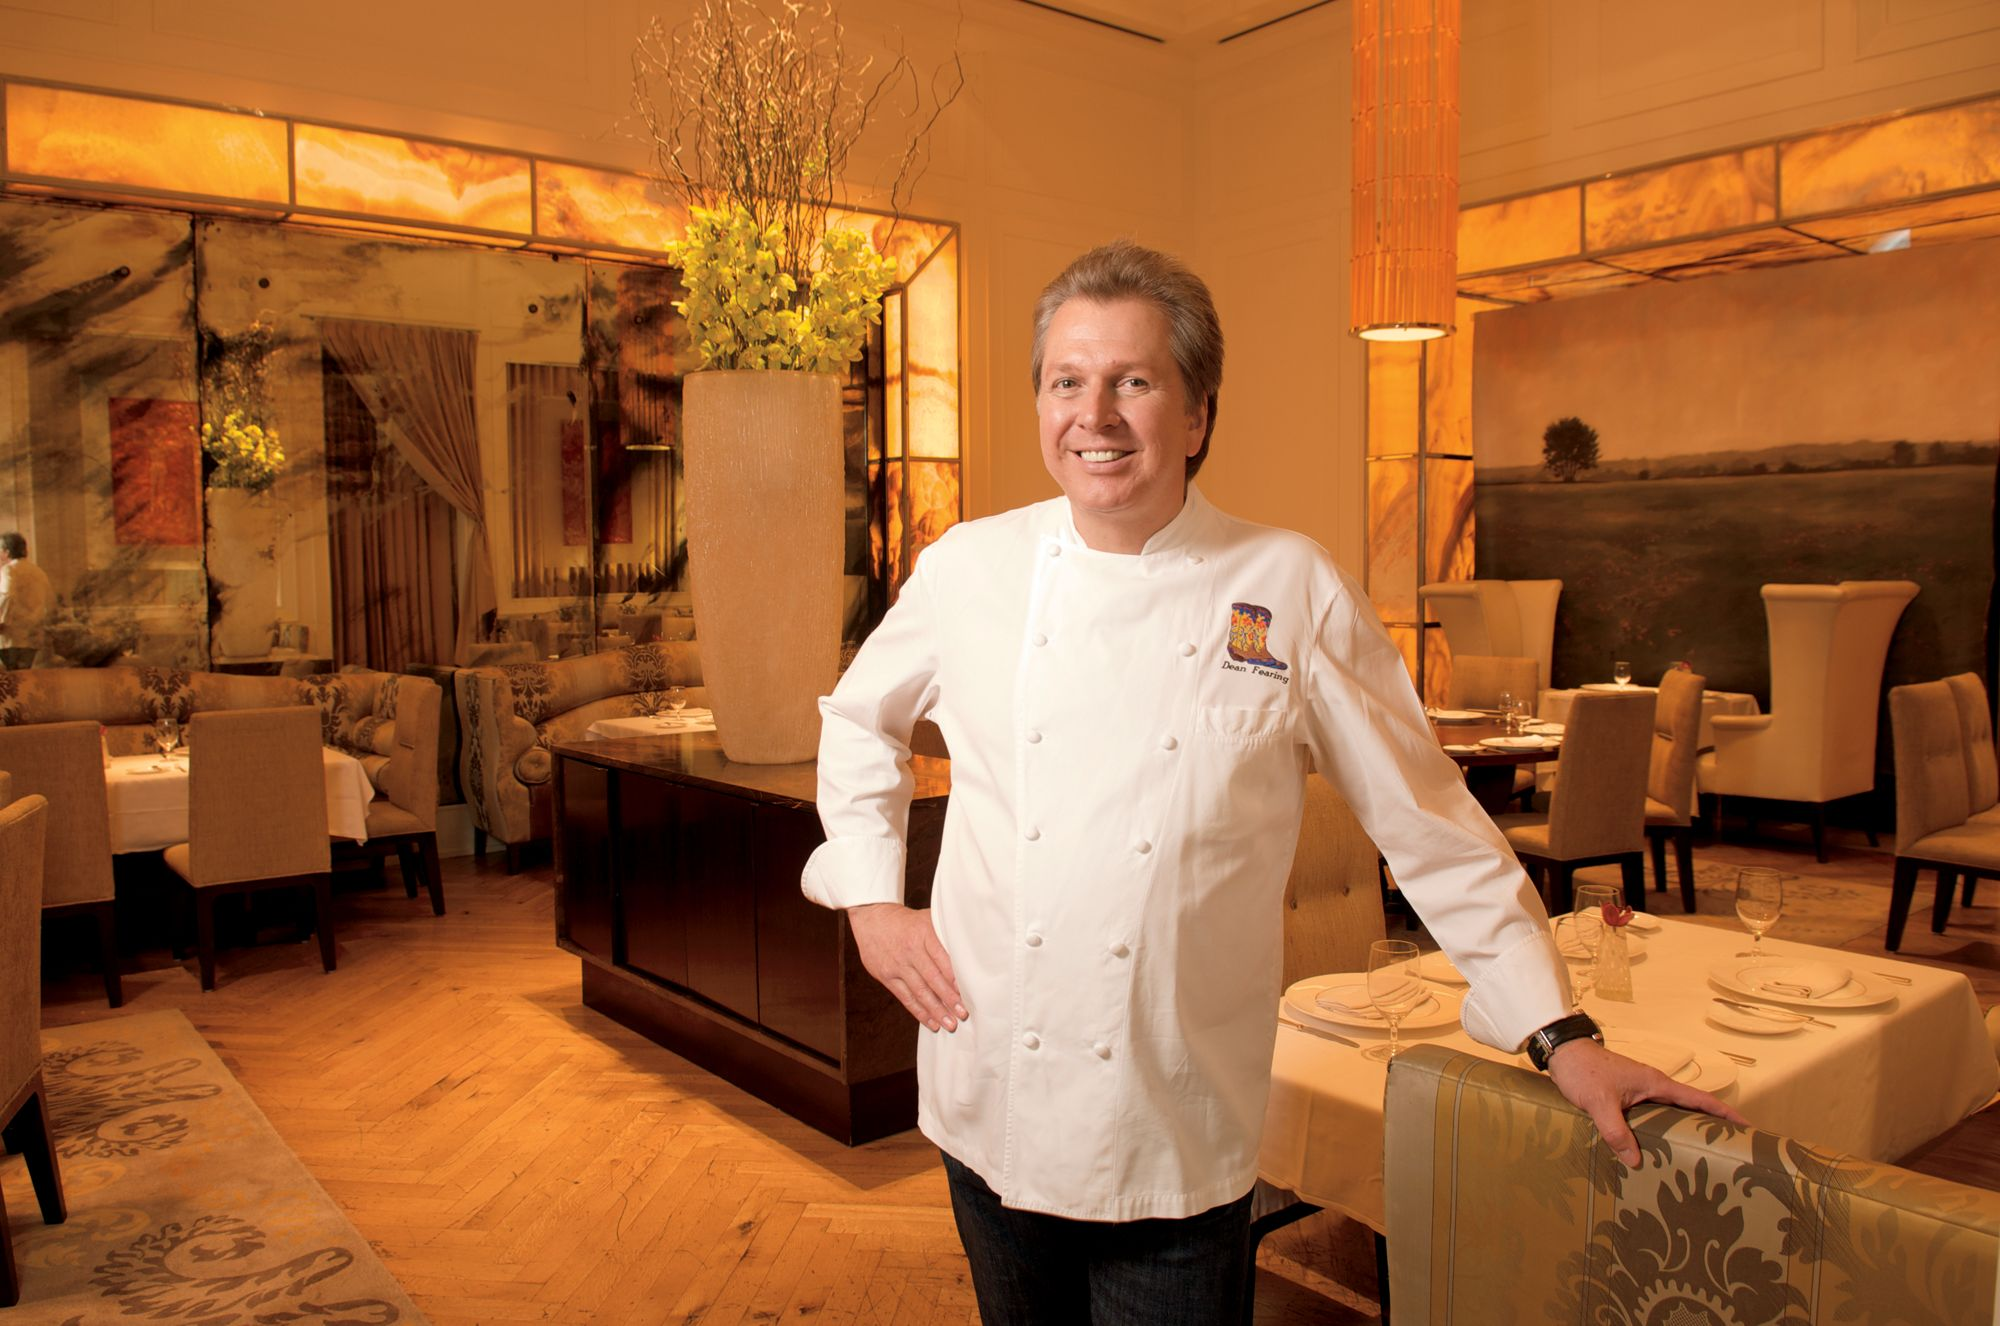 Smiling man in chef's whites standing with his arms crossed in a restaurant dining room